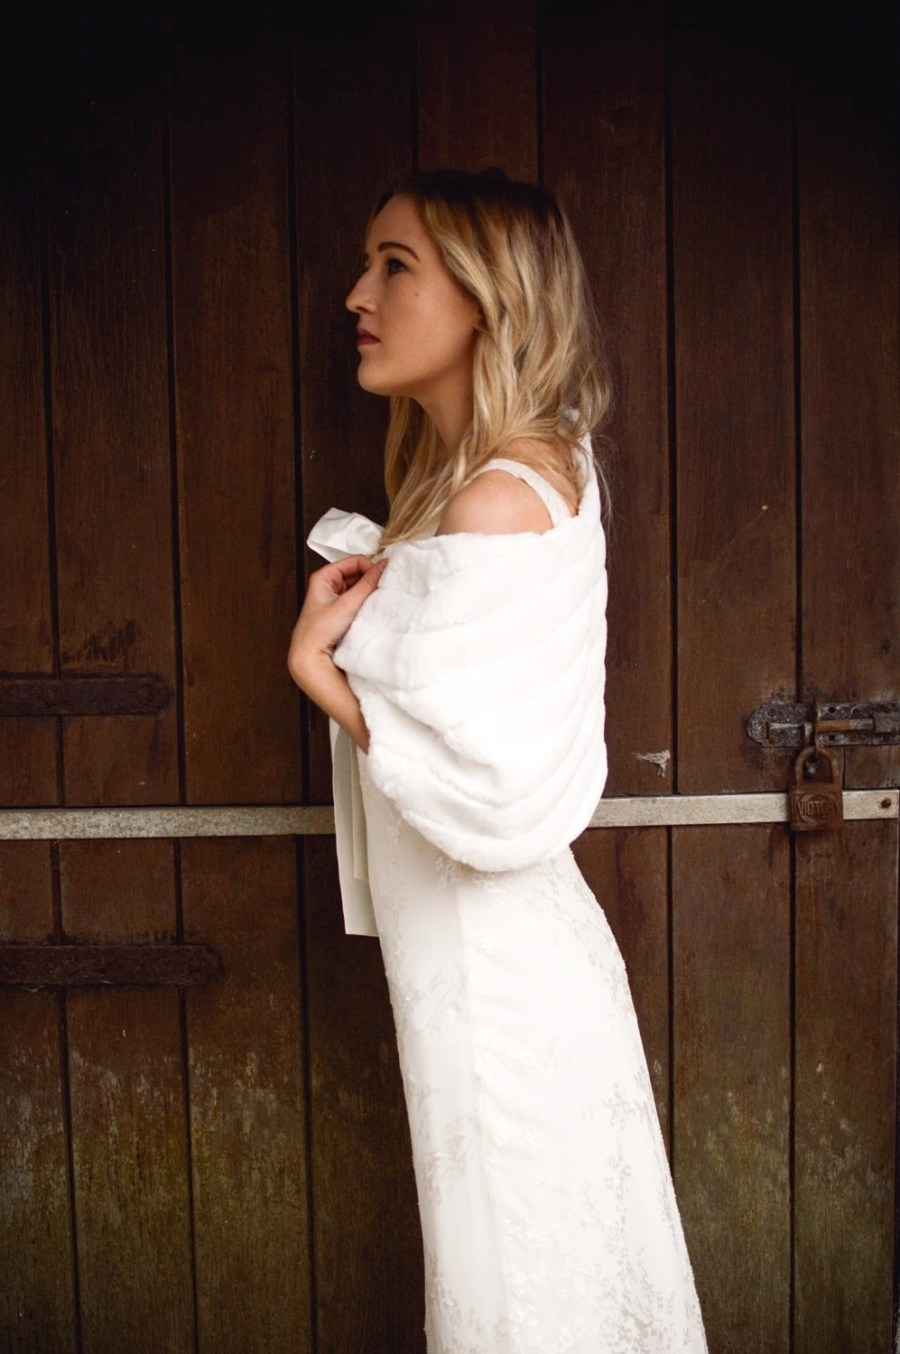 BB22 – faux fur bridal cape wrap shrug with a pretty satin bow on blonde bride with hair down side view stable door